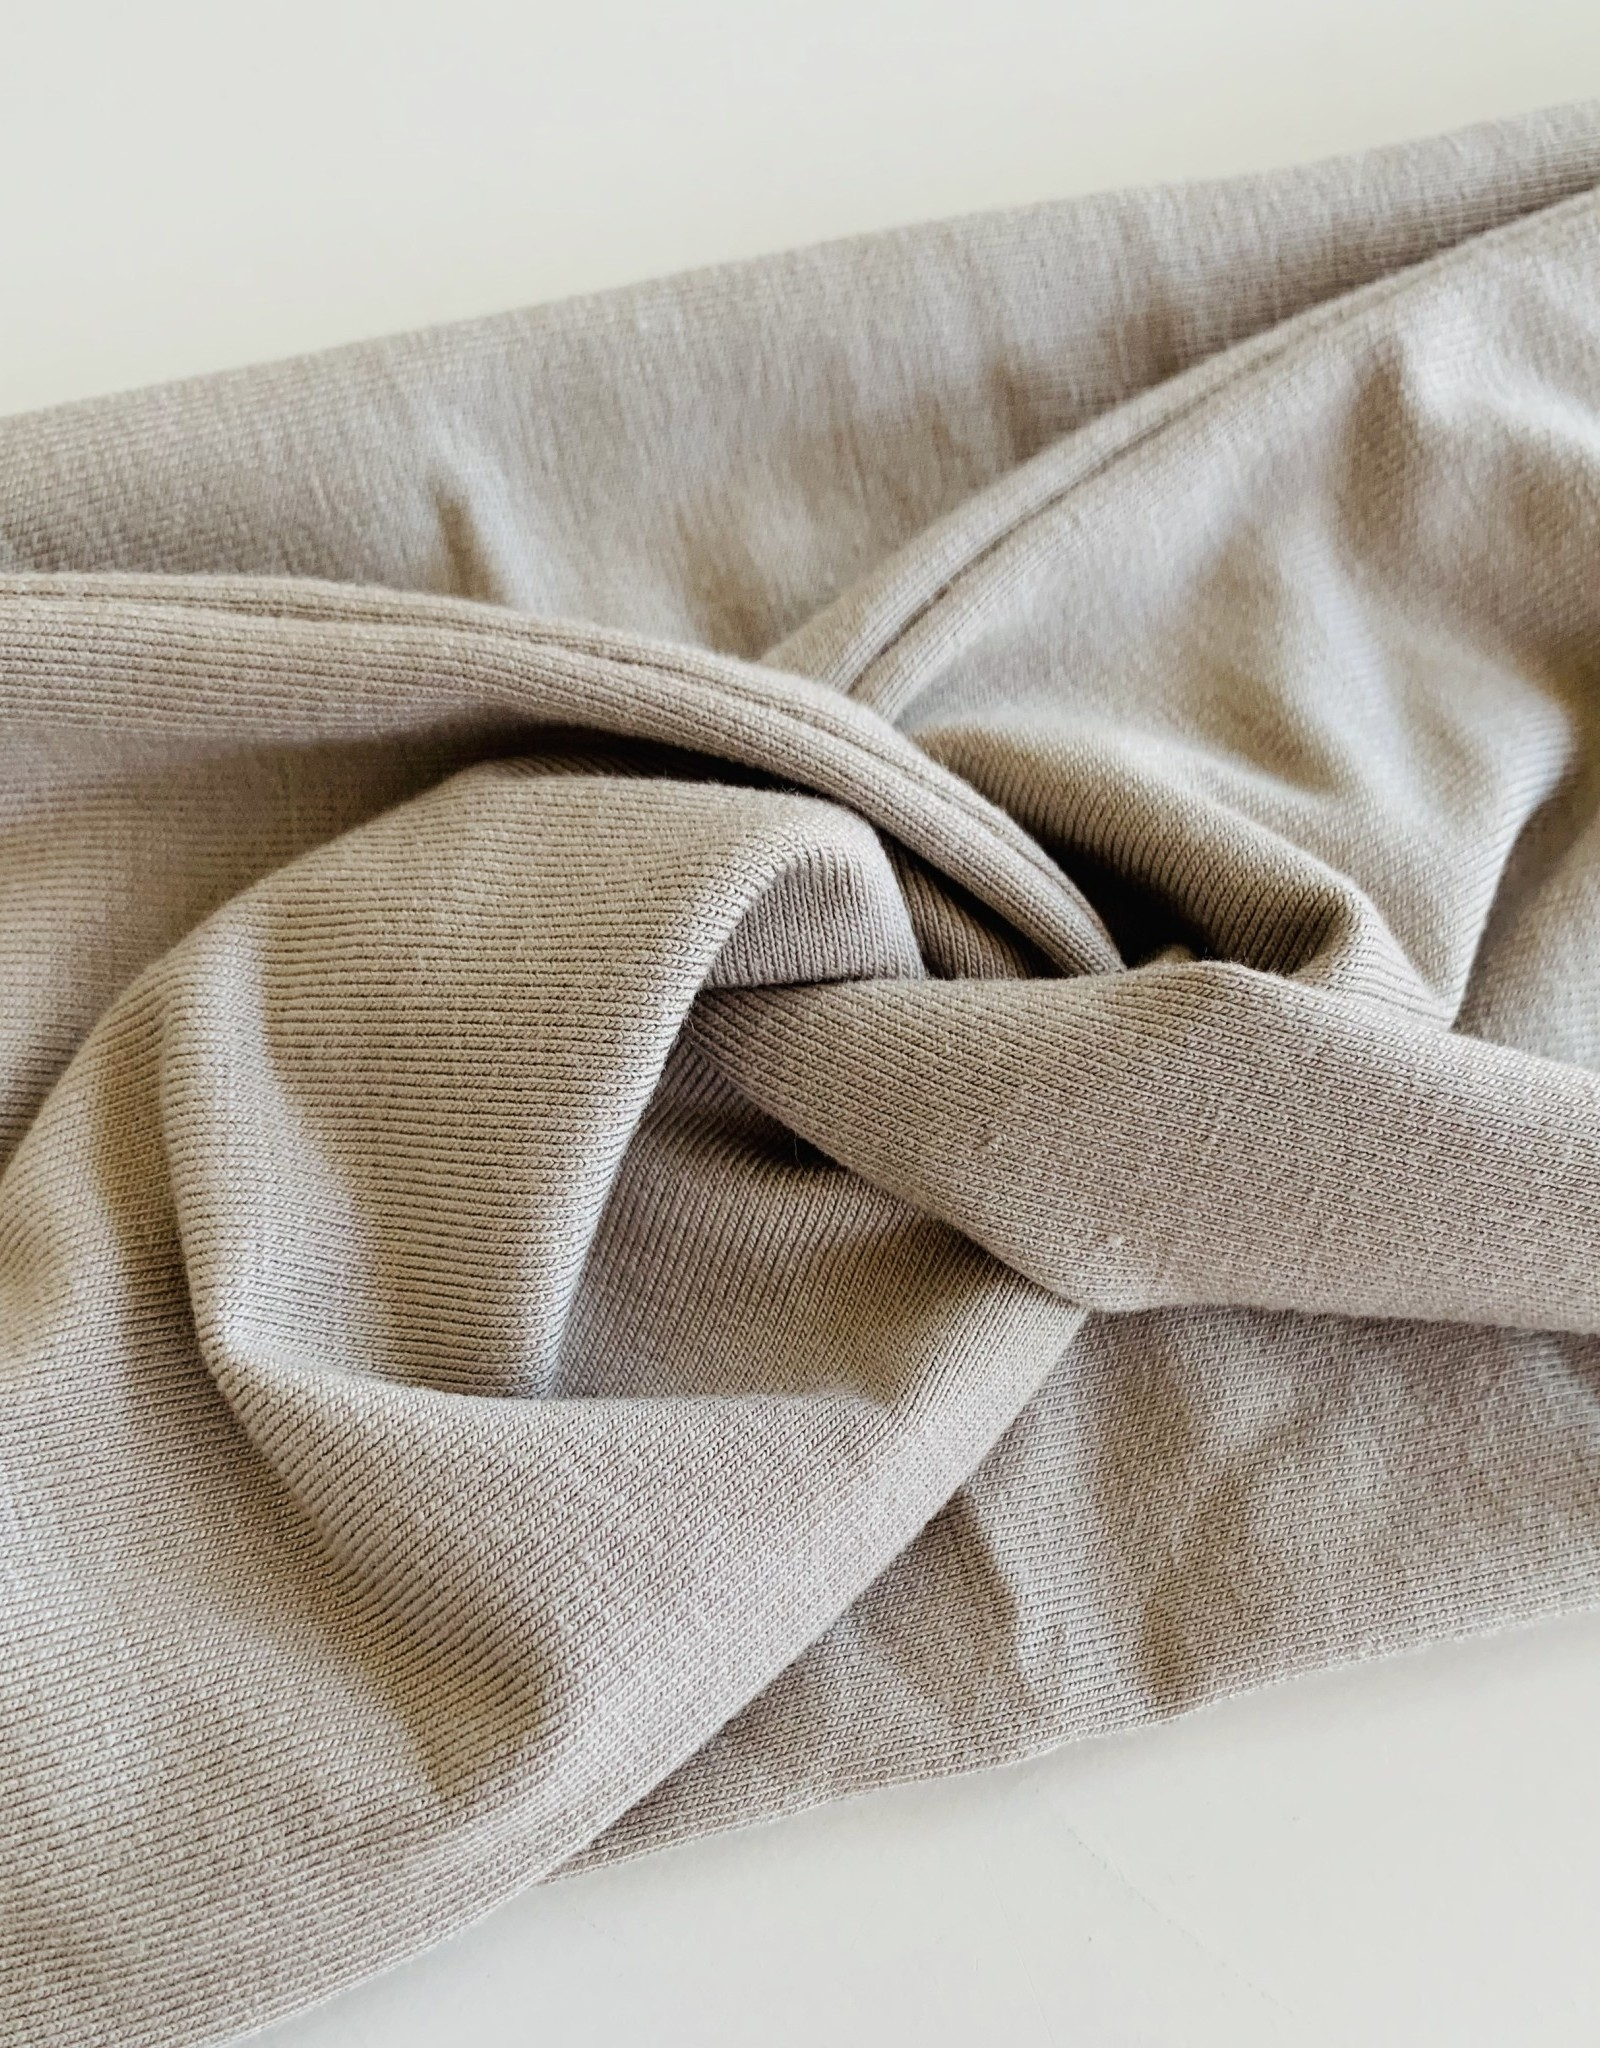 Béguin Crossed Headband 2 in 1 - Taupe Grey 2-5 Years Old